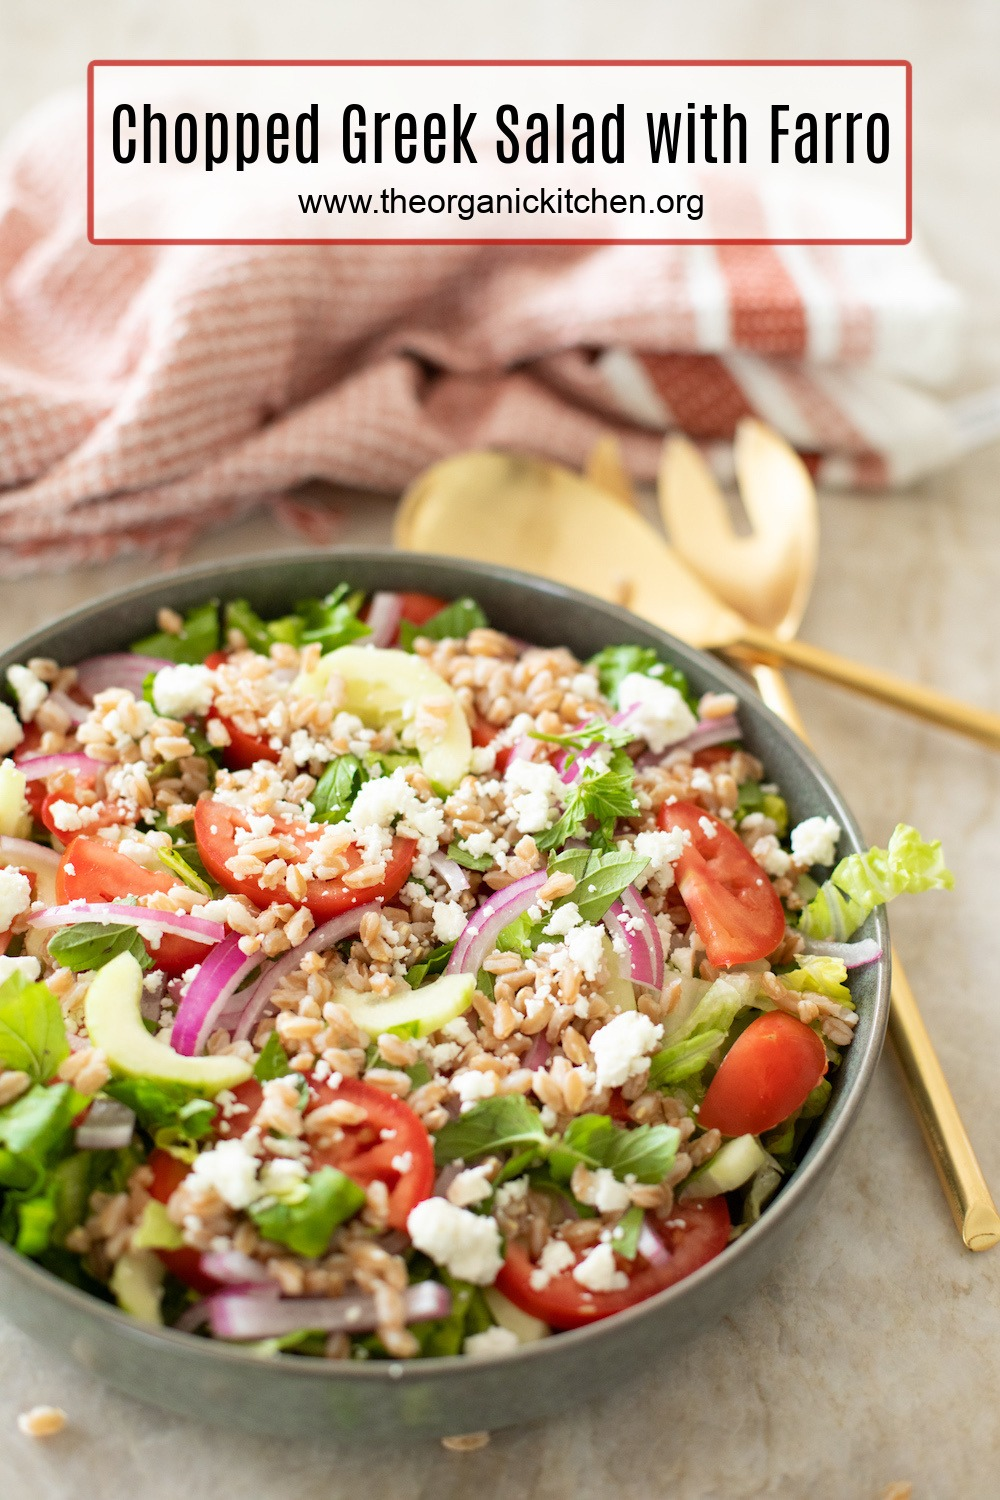 Chopped Greek Salad with Farro in a grey bowl with gold serving spoons